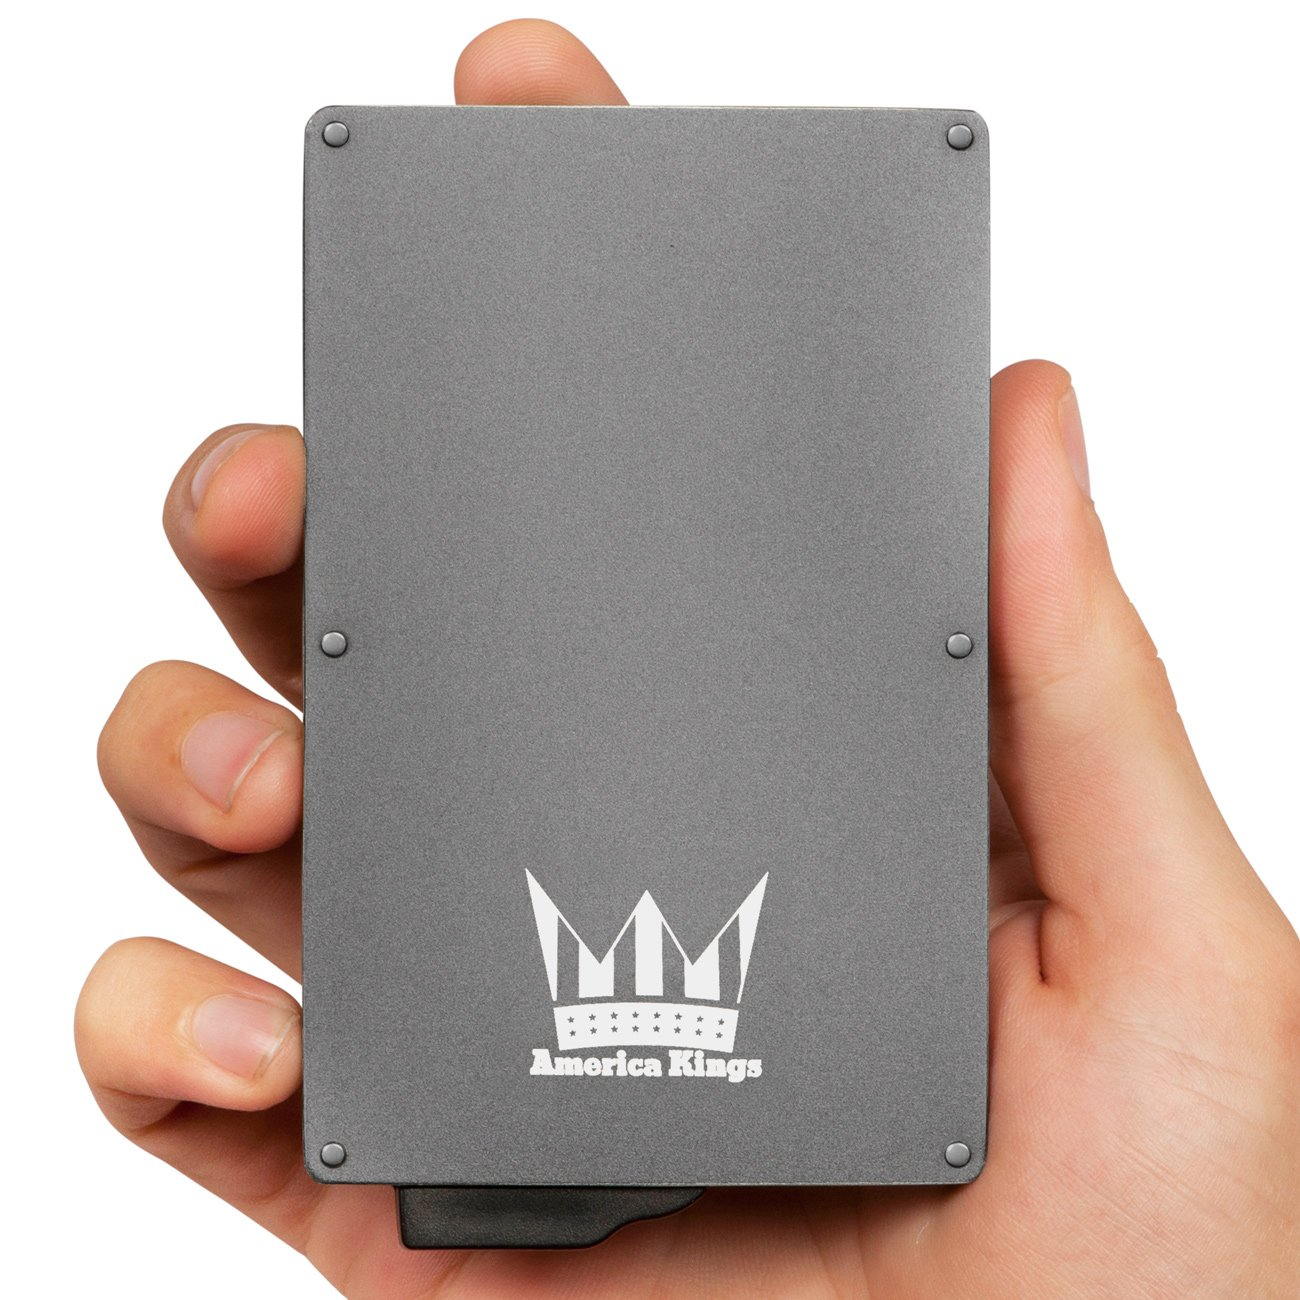 RFID Blocking Credit Card Holder By America Kings, Aluminum Slim Wallet, Credit Card Holder for All Kind Of Cards, With One Click All 6 Cards Slide Out, In A Nice Gift Box, (Space Gray)